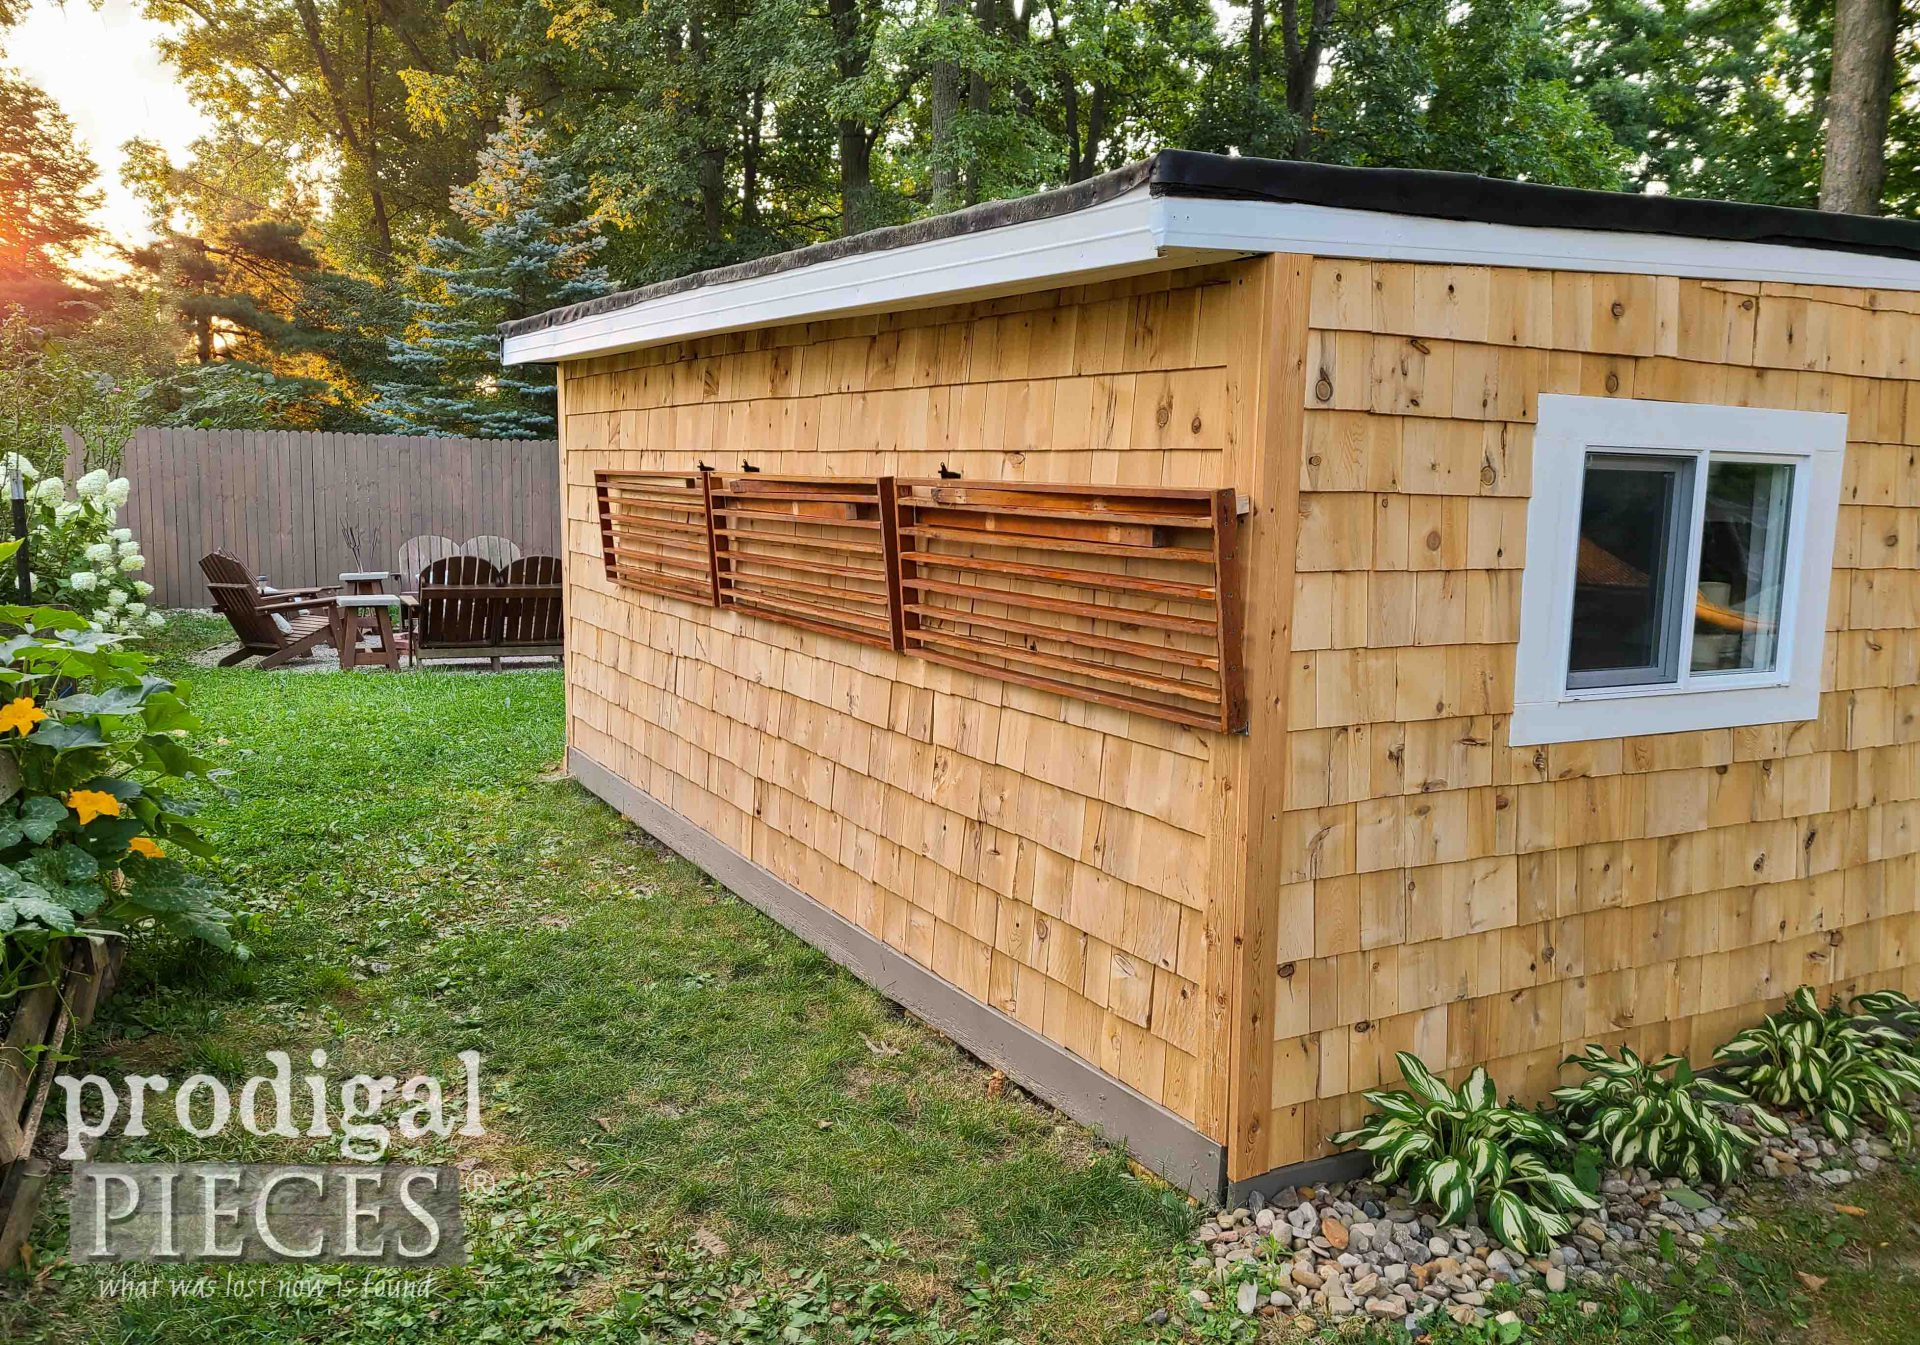 DIY Garden Shed Potting Bench by Larissa of Prodigal Pieces | prodigalpieces.com #prodigalpieces #garden #diy #home